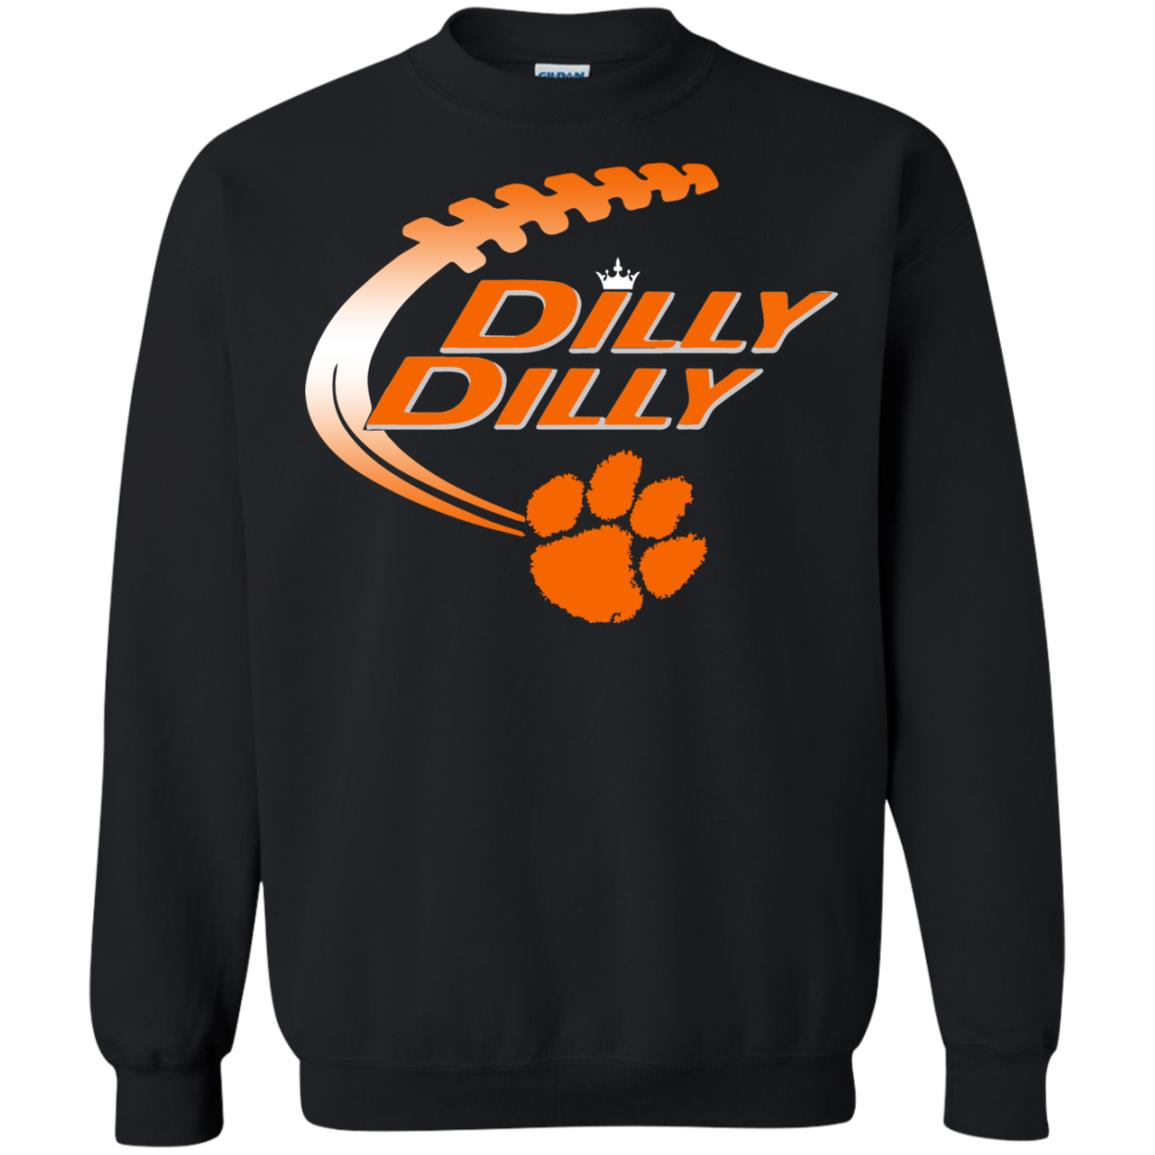 image 1458 - Dilly Dilly Clemson Tigers shirt & sweatshirt